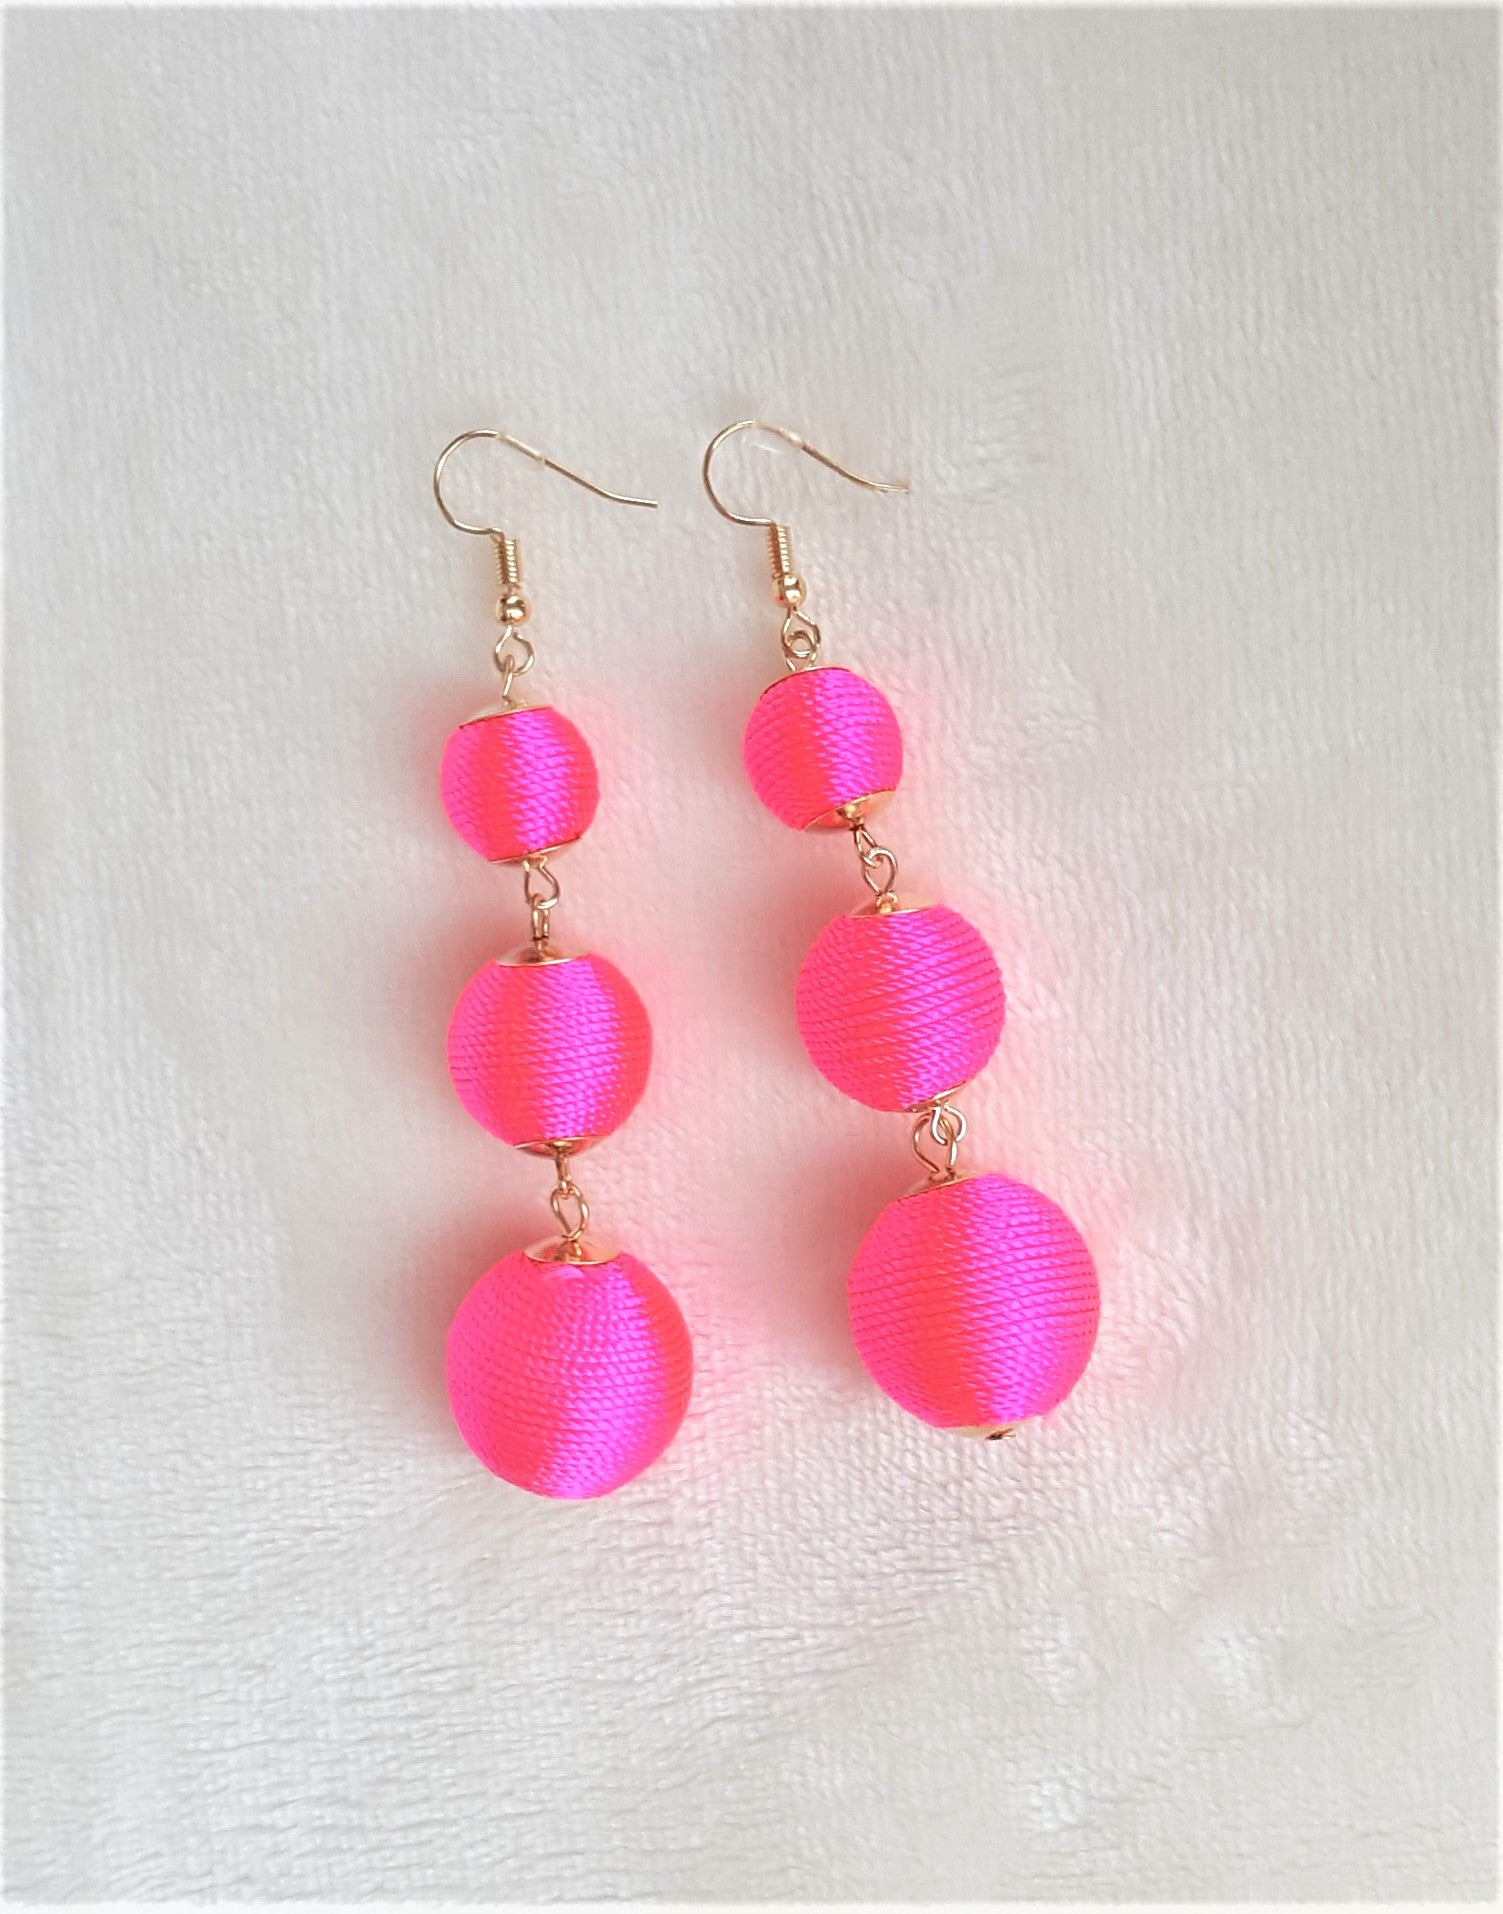 wire wrapped dangly hoops big earrings statement artsy big hoops trendy brass colorful pink boho unique seed bead Neon earrings